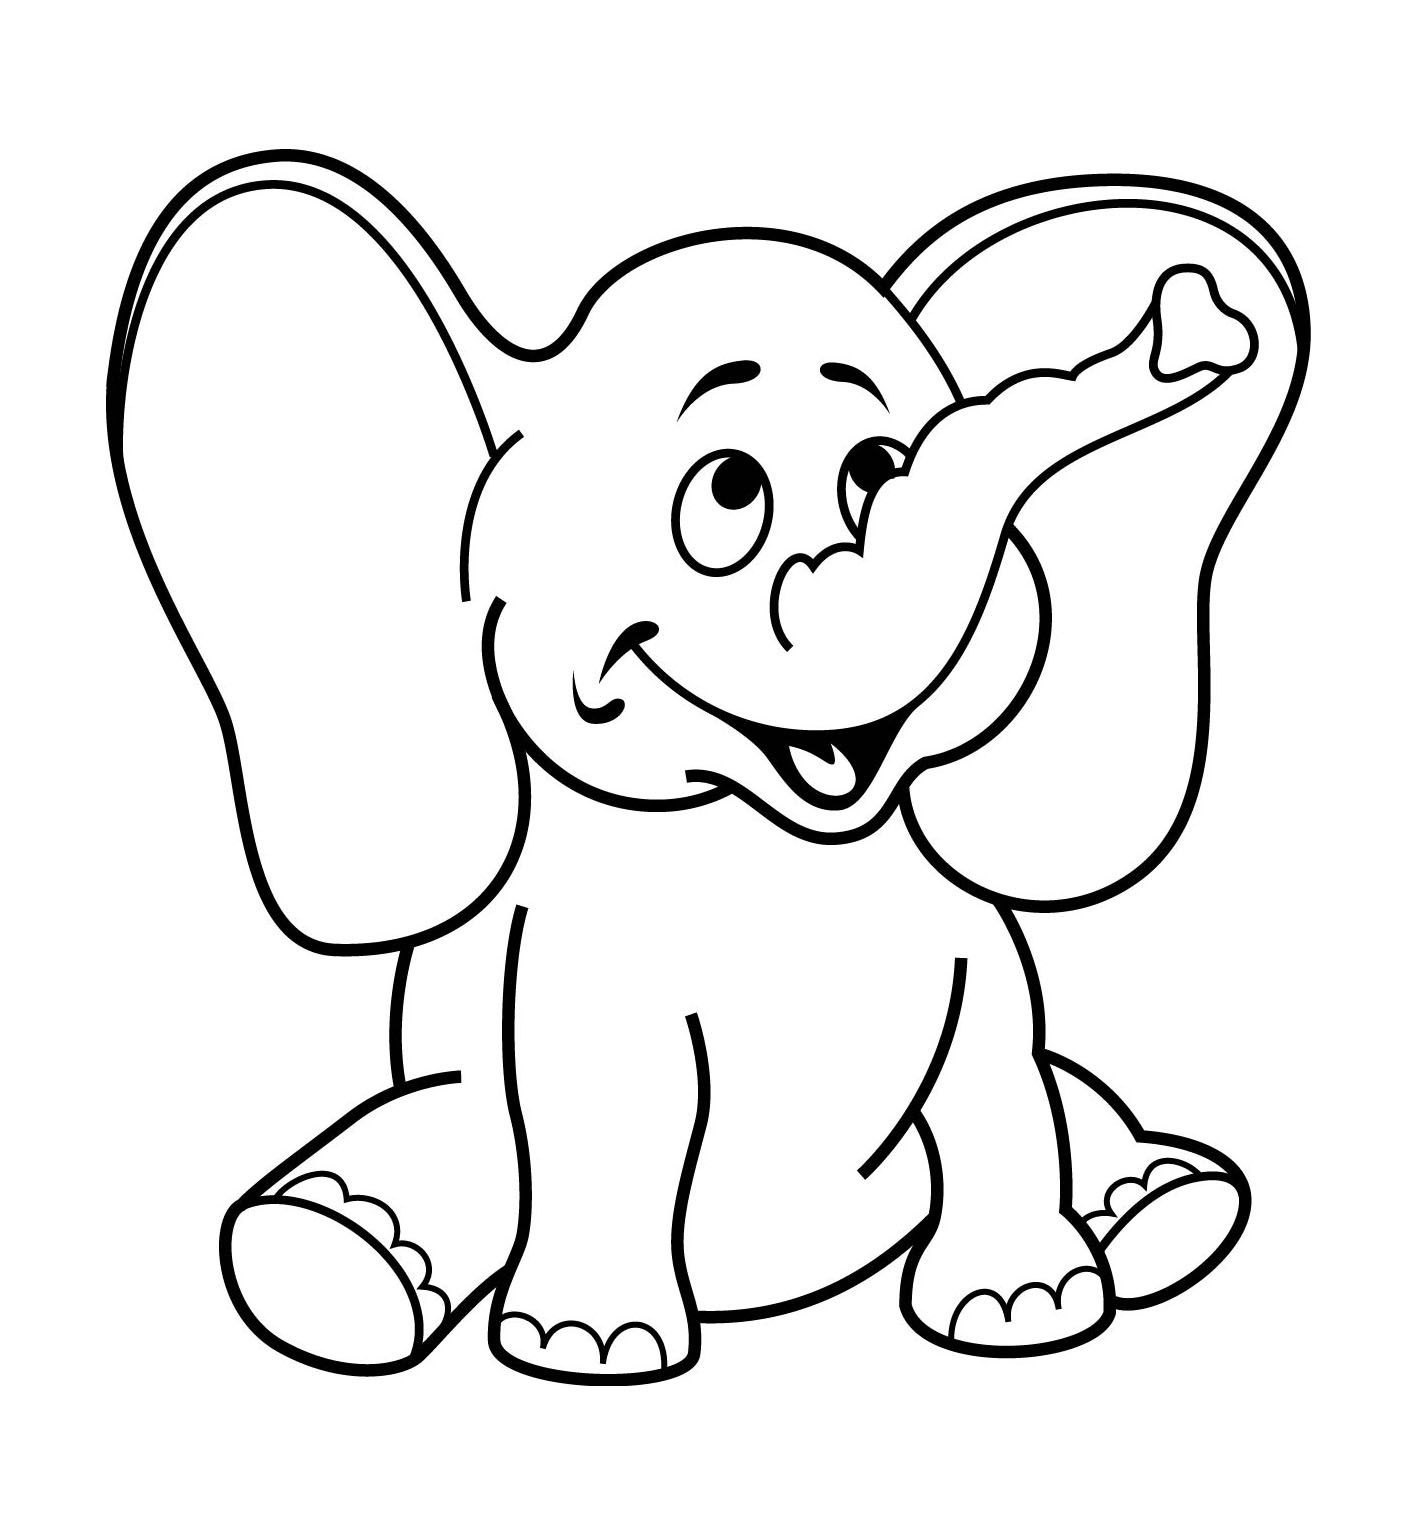 coloring pictures for 2 year olds free printable coloring pages for 2 year olds free printable 2 pictures for year coloring olds